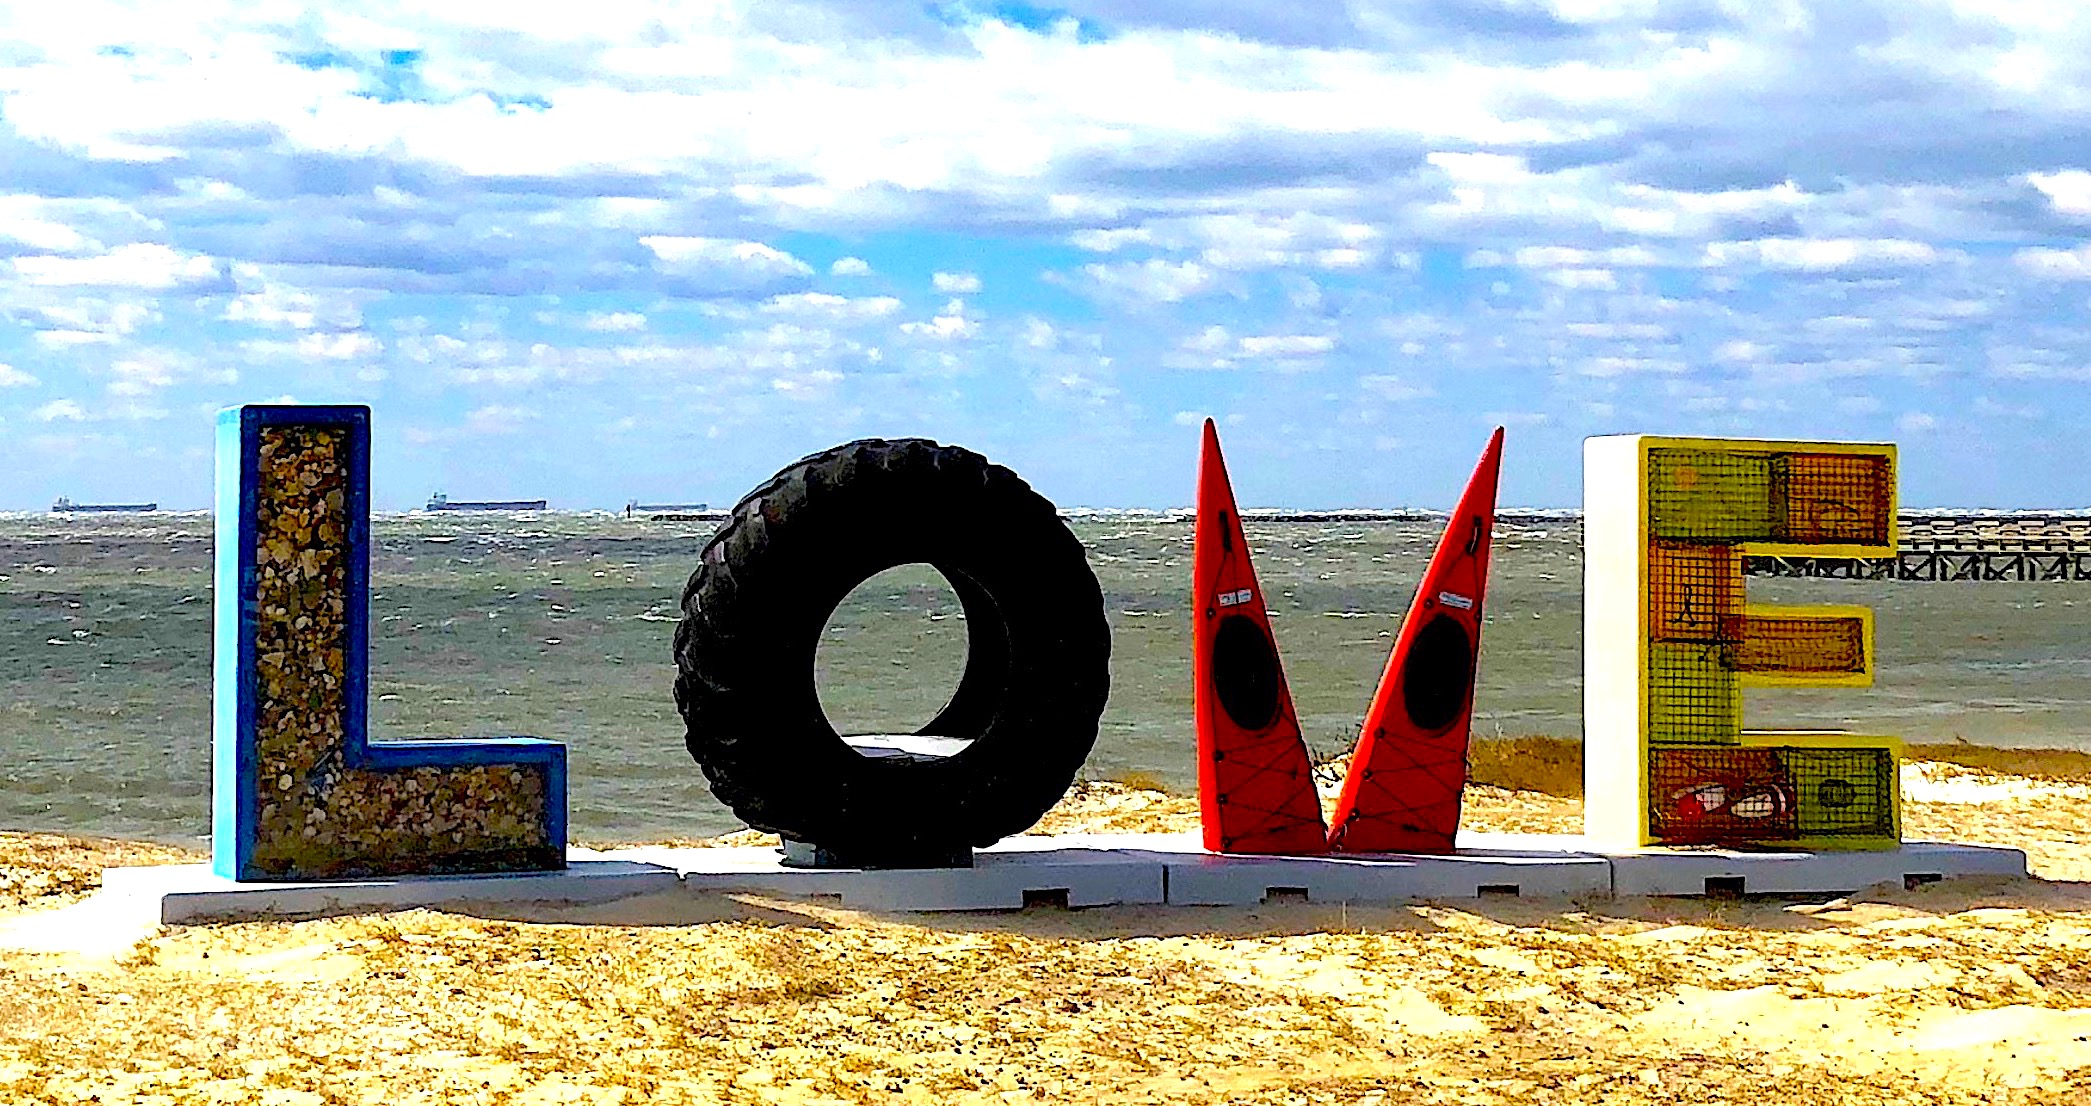 L O V E letters, O in shape of tire, V in shape of Kayaks with background of chesapeake bay